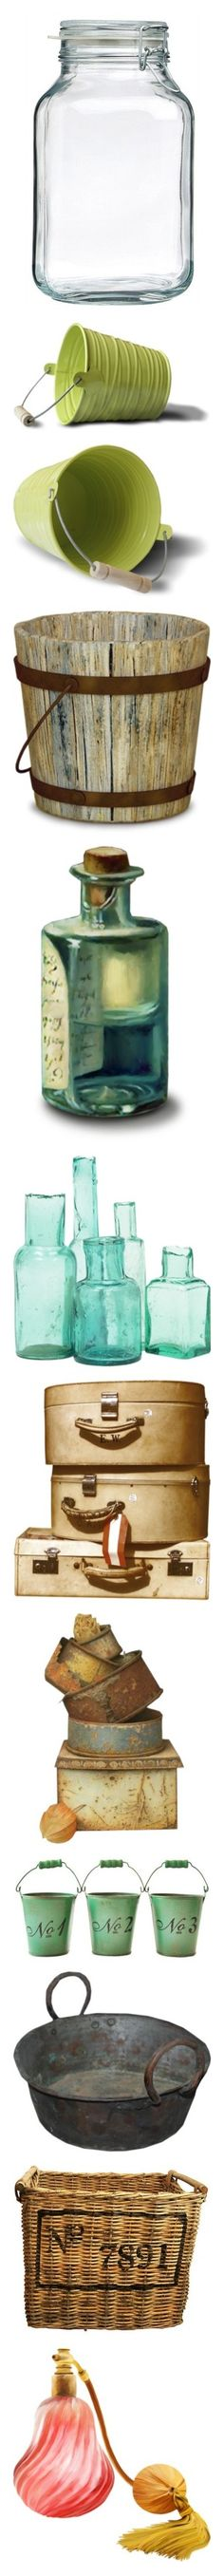 """""""Containers, Bottles, Jars"""" by nerd-muffin ❤ liked on Polyvore featuring home, kitchen & dining, food storage containers, bormioli rocco, bormioli rocco jars, storage jars, easter, fillers, buckets and garden"""